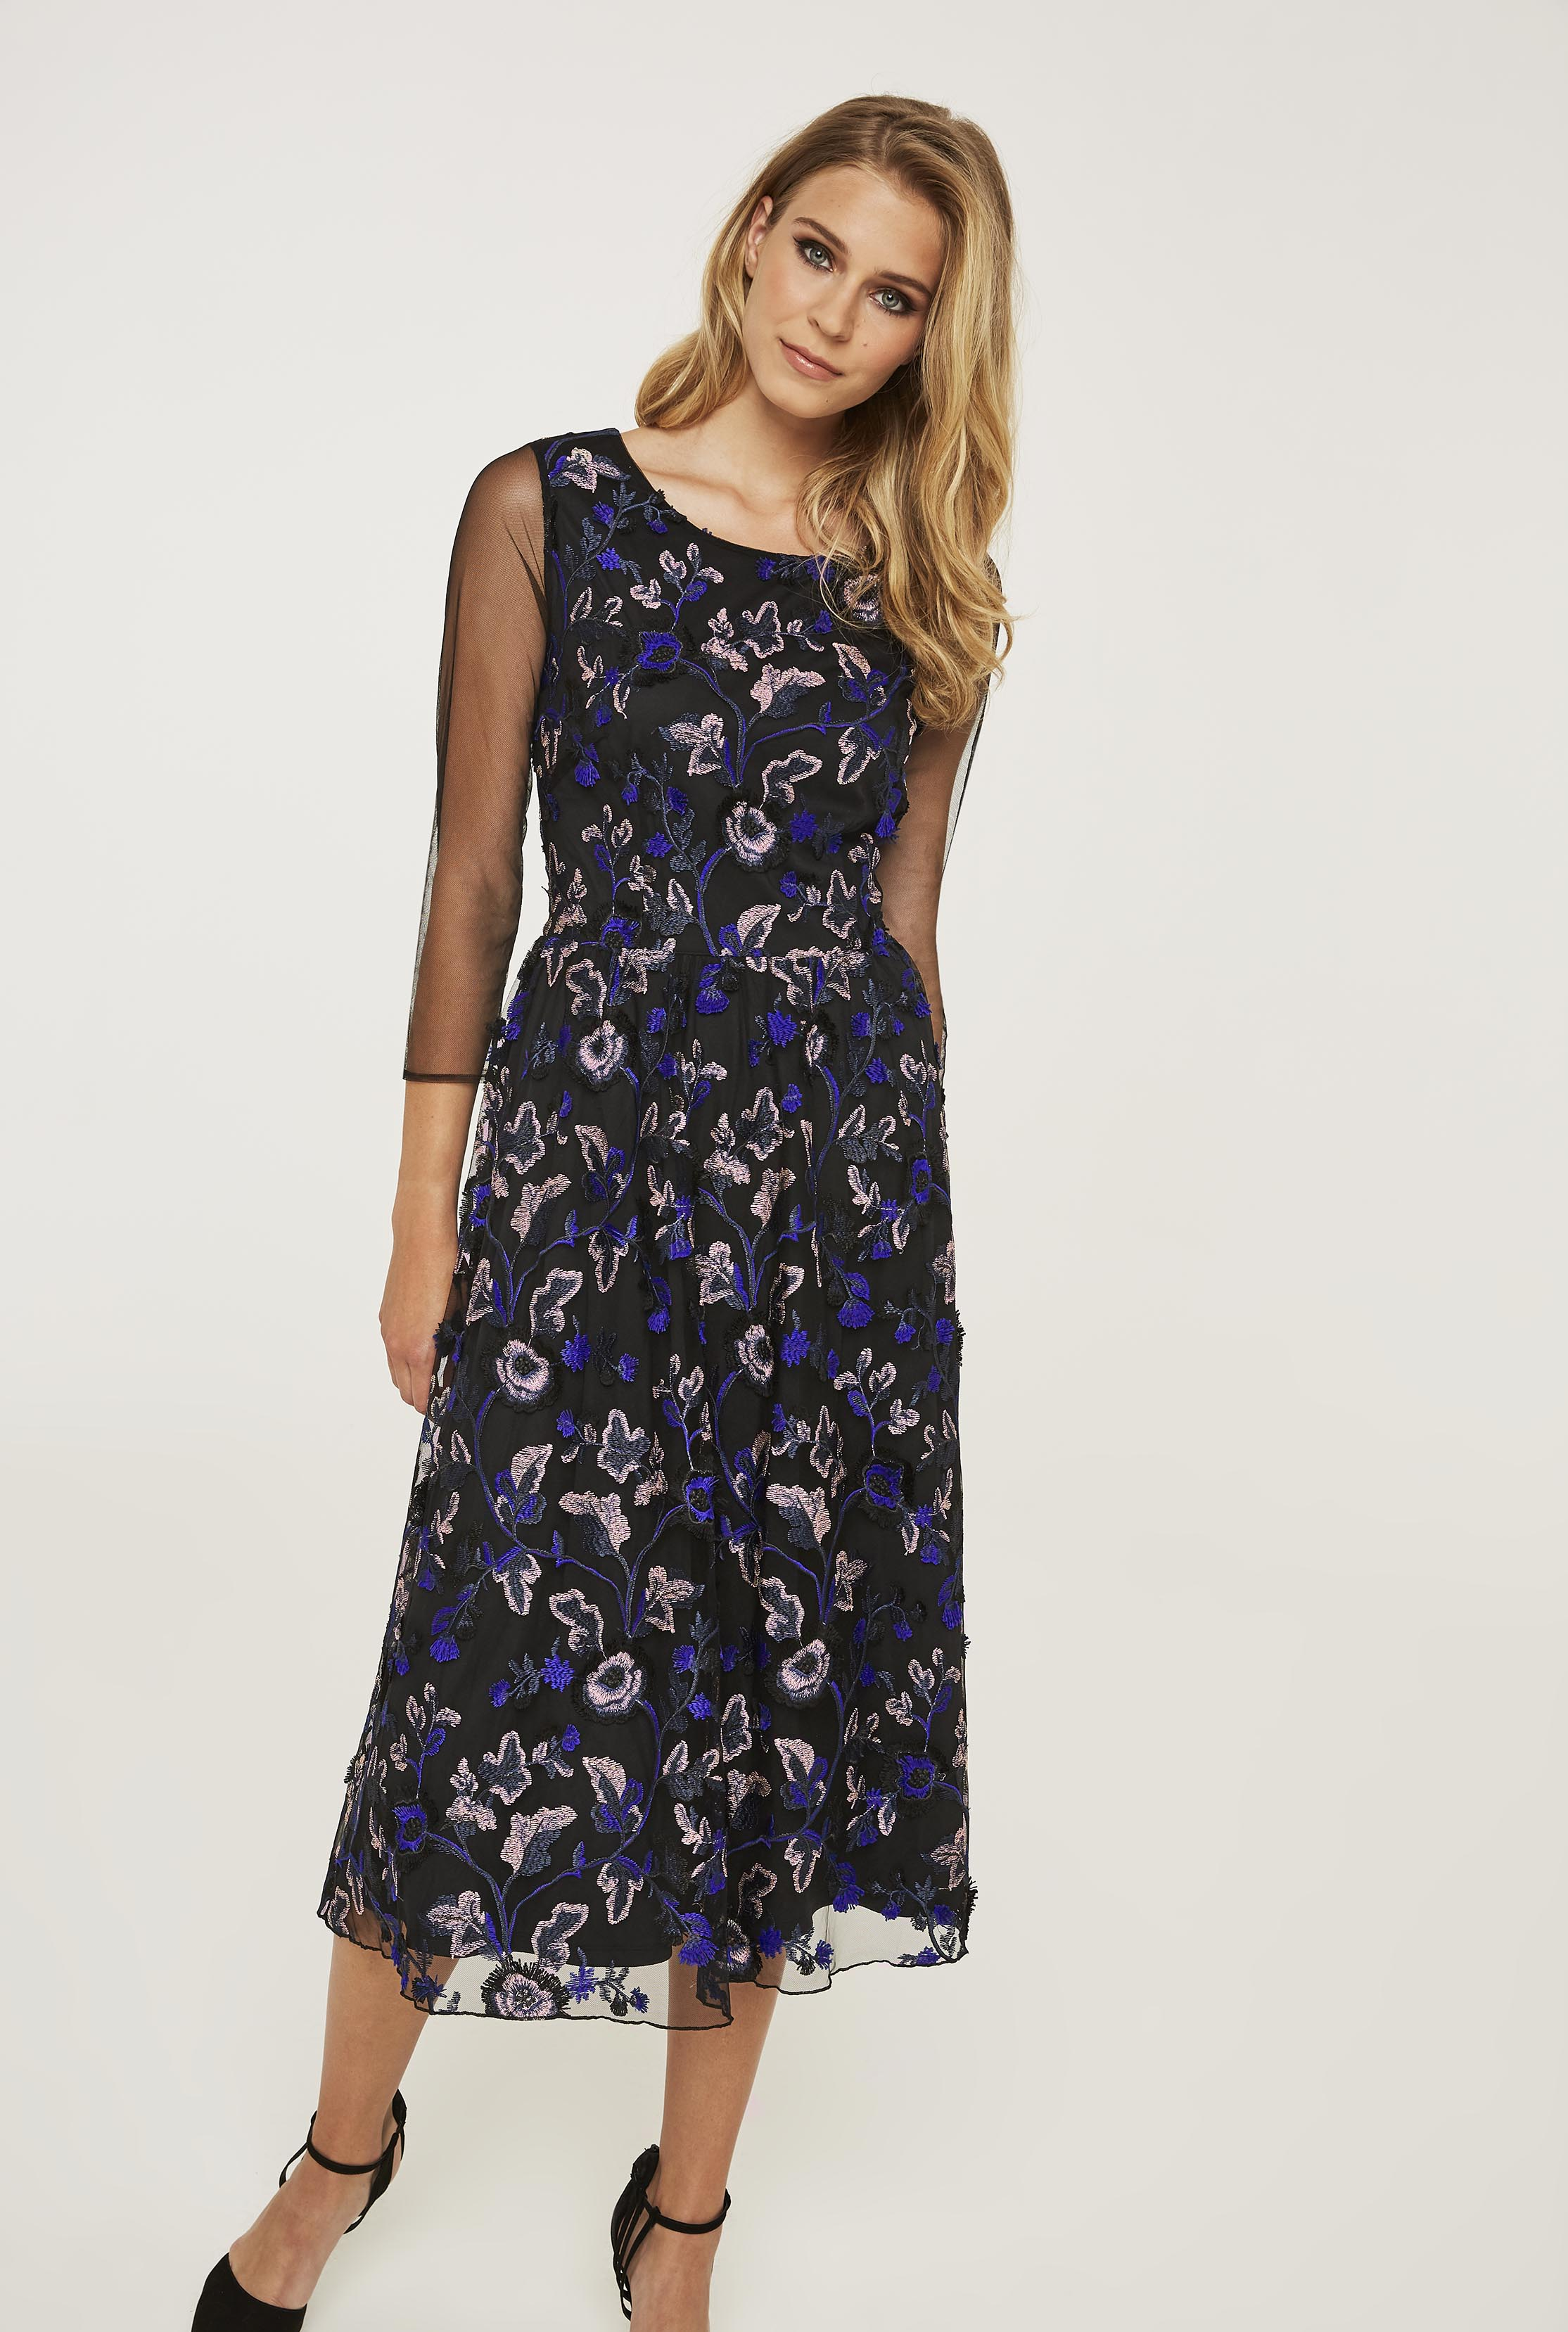 Embroidered Flower Mesh Dress